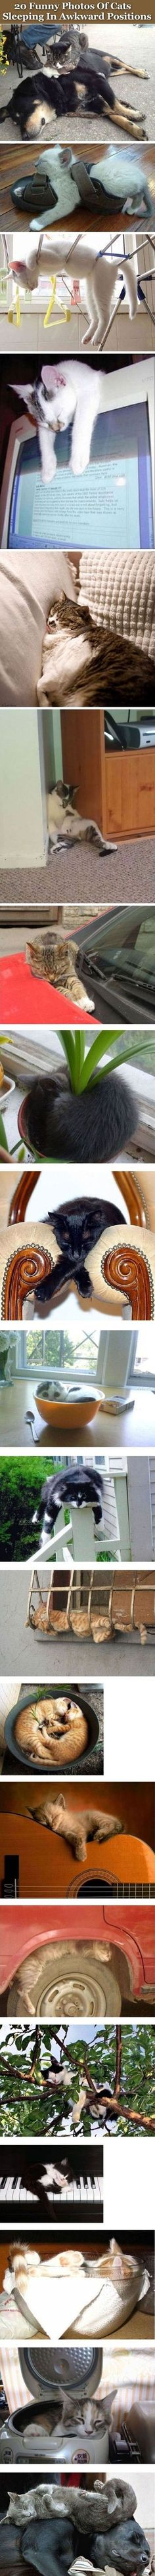 20 Funny Photos Of Cats Sleeping In Awkward Positions cute animals cat cats adorable animal kittens pets kitten funny pictures funny animals funny cats